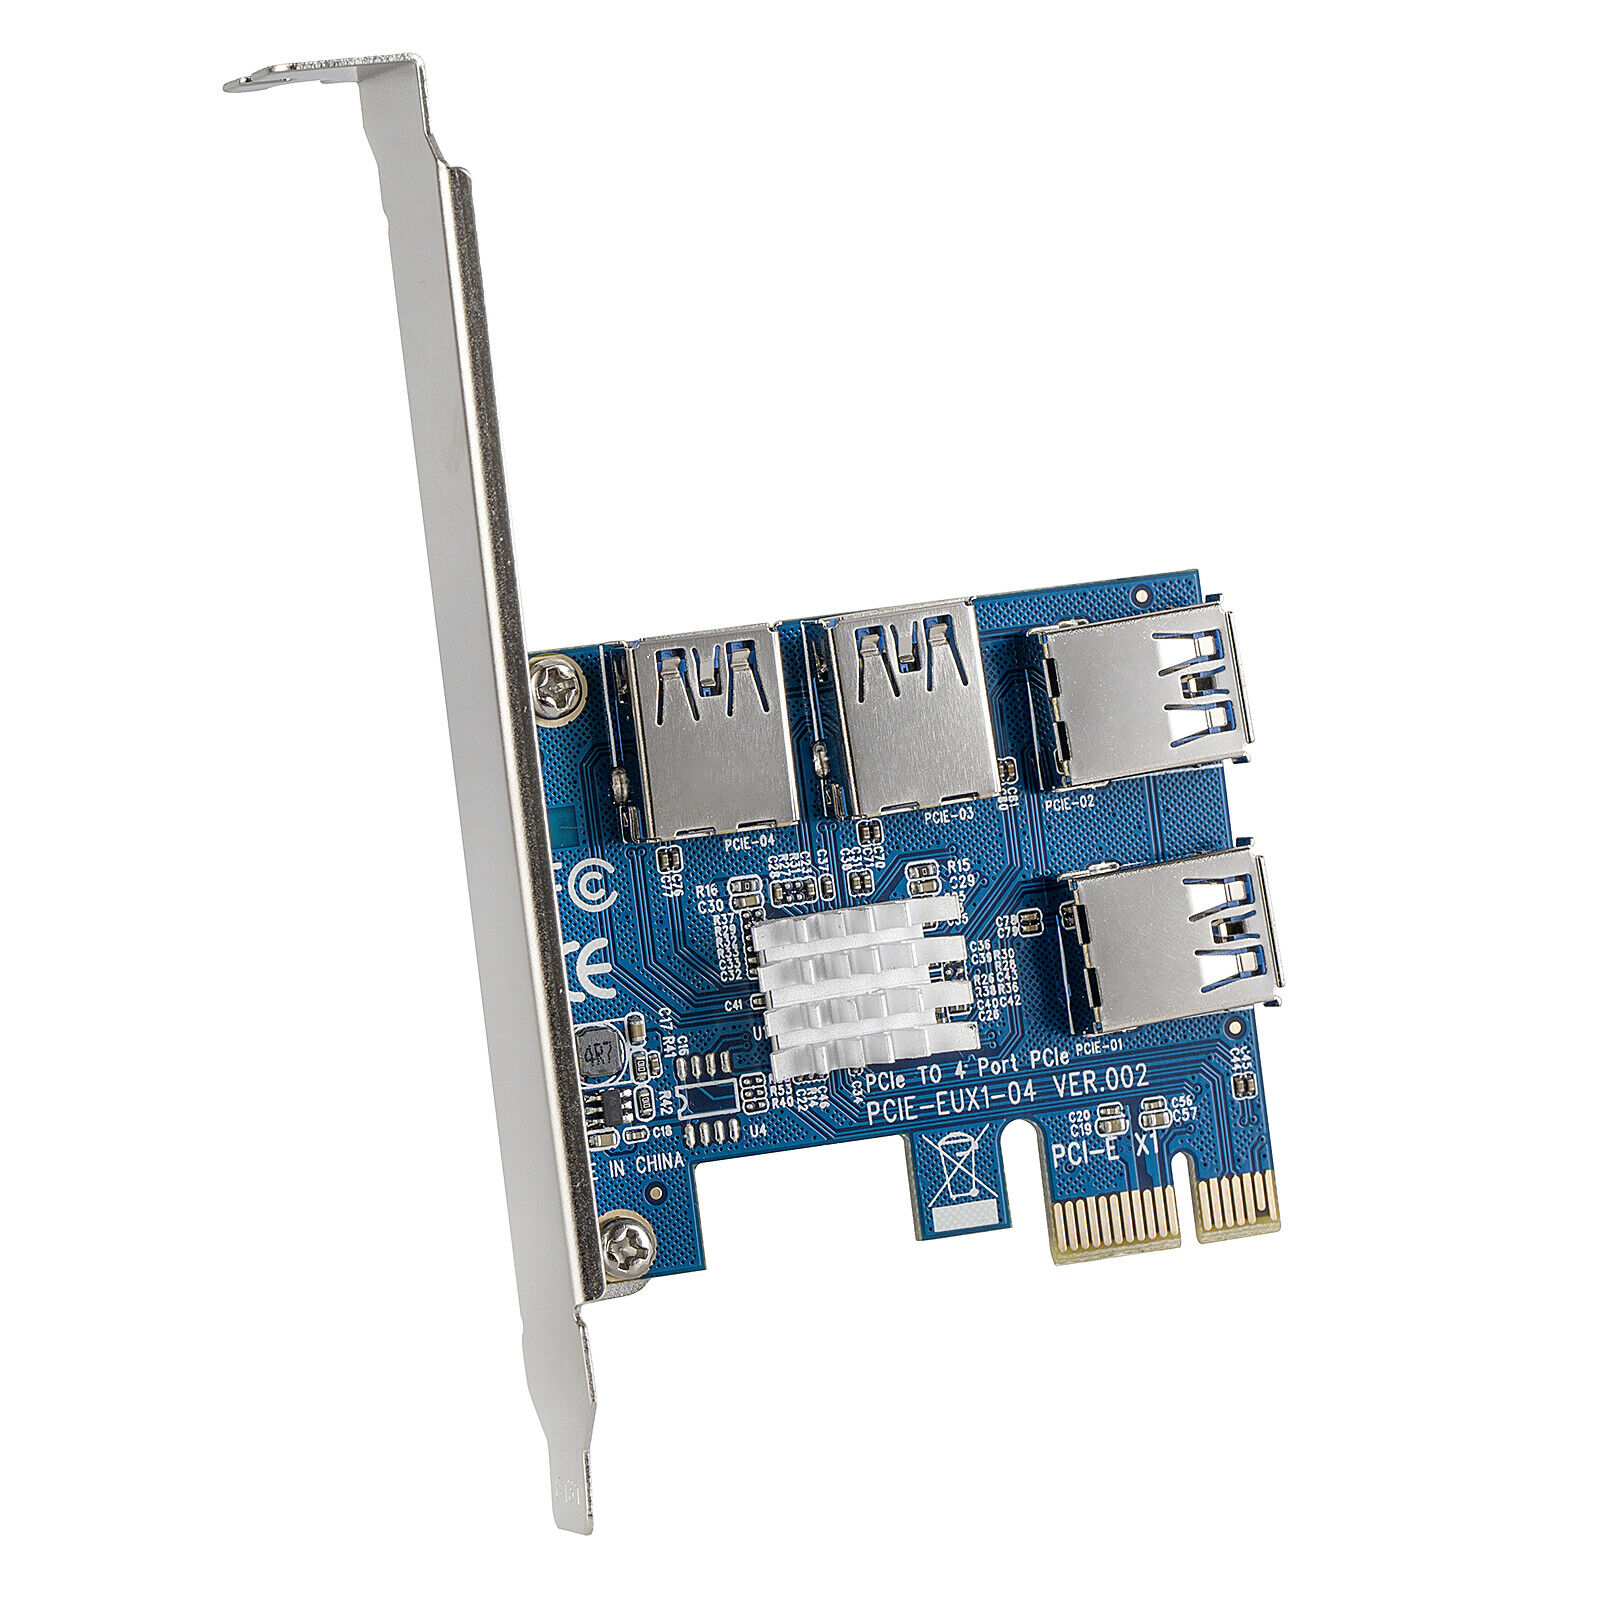 PCI-e to USB 3.0 Riser Card 4 Port Expander Adapter Bracket Coin Mining Board